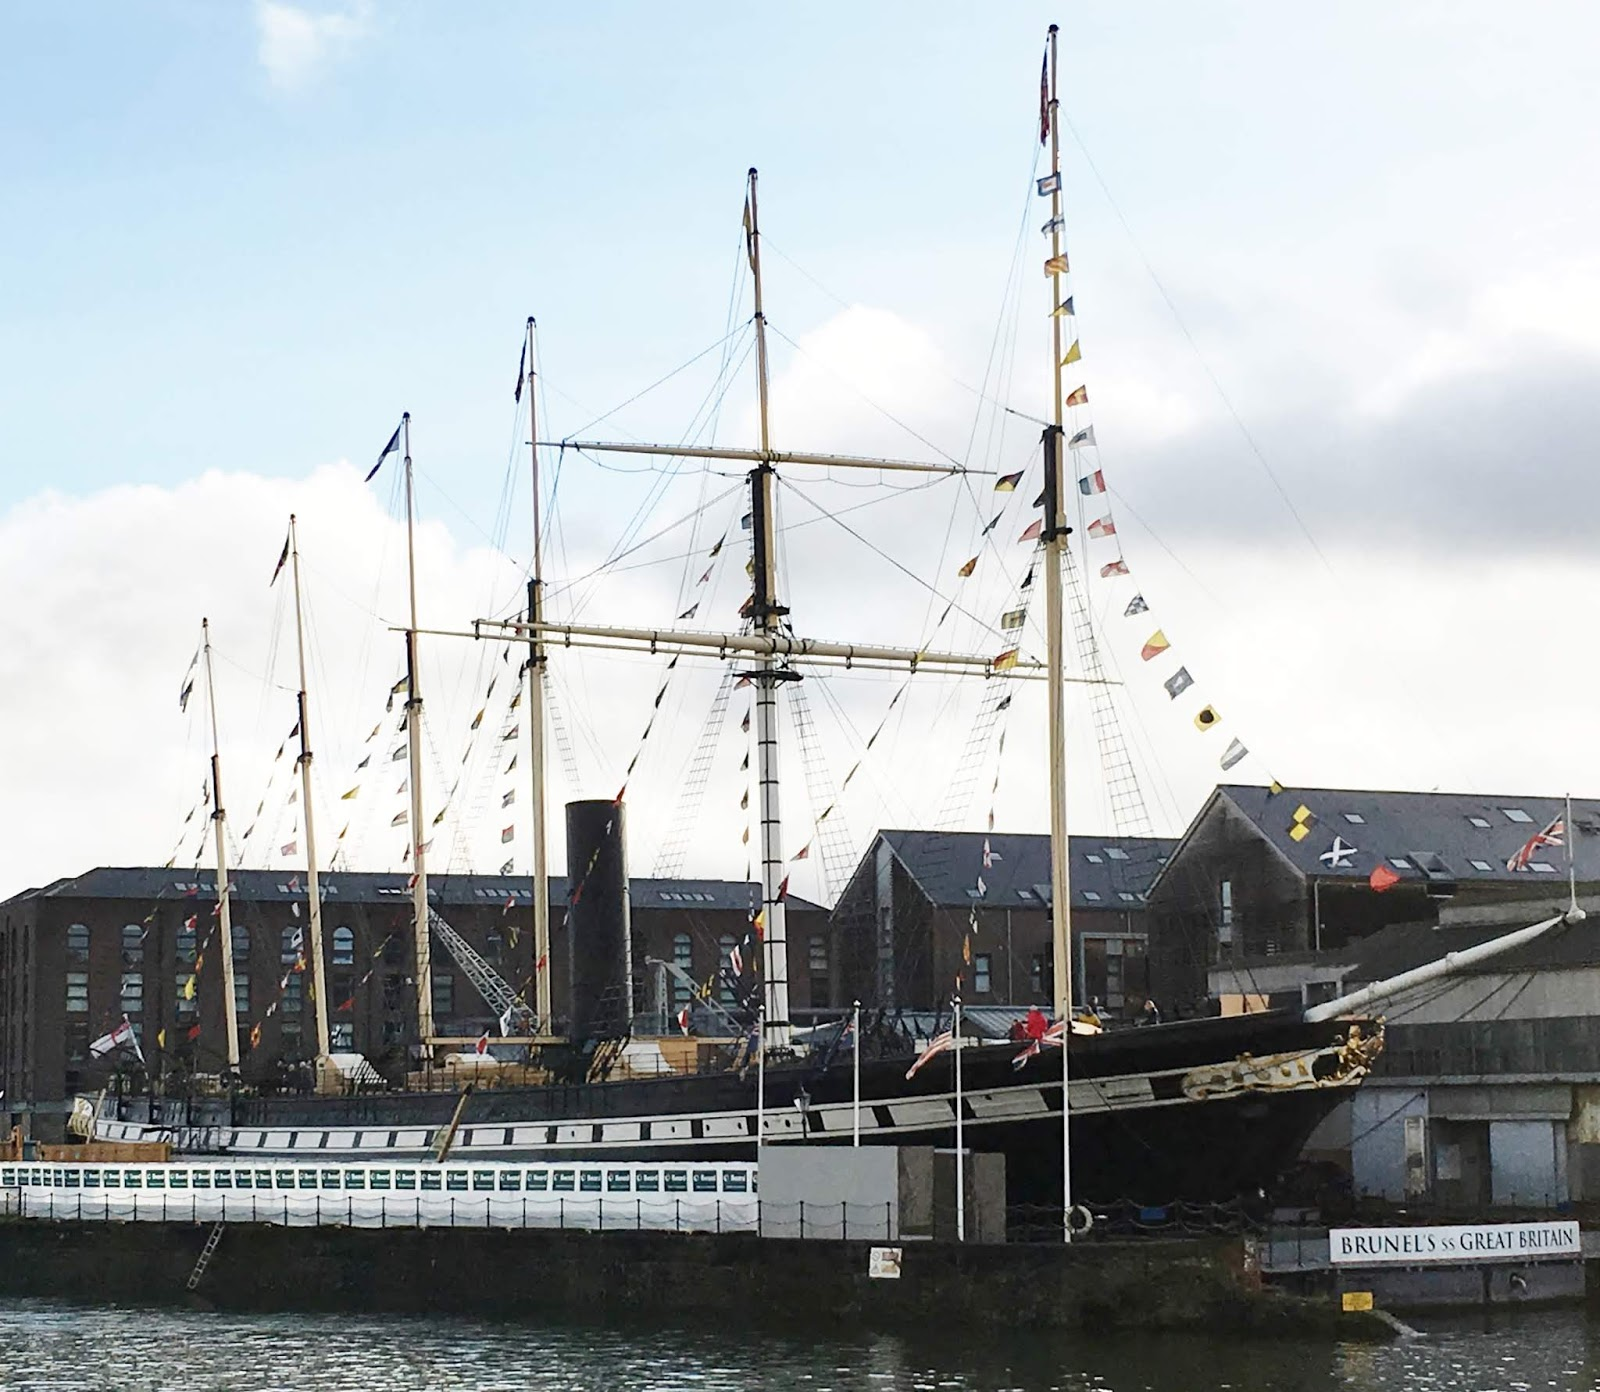 Battleaxe in Bristol – enjoyed the SS Great Britain